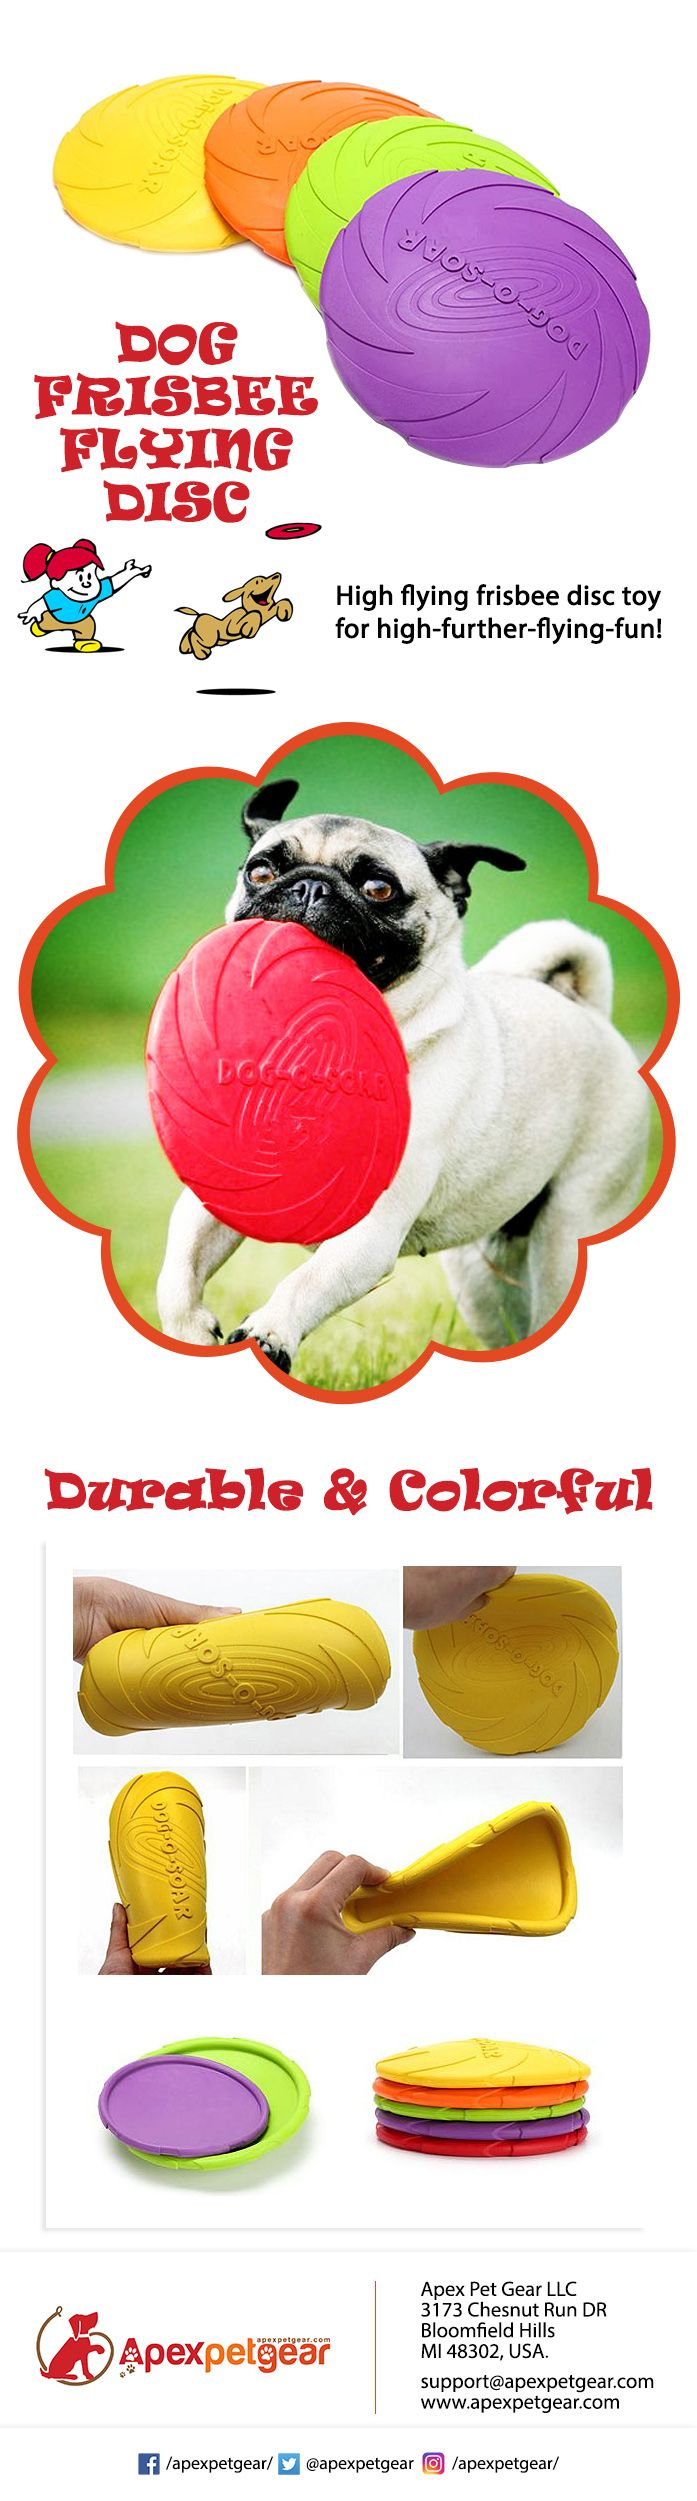 DOG FRISBEE FLYING DISC,  DOG TOYS, TOYS FOR DOGS #dogtraining #petplay #toys